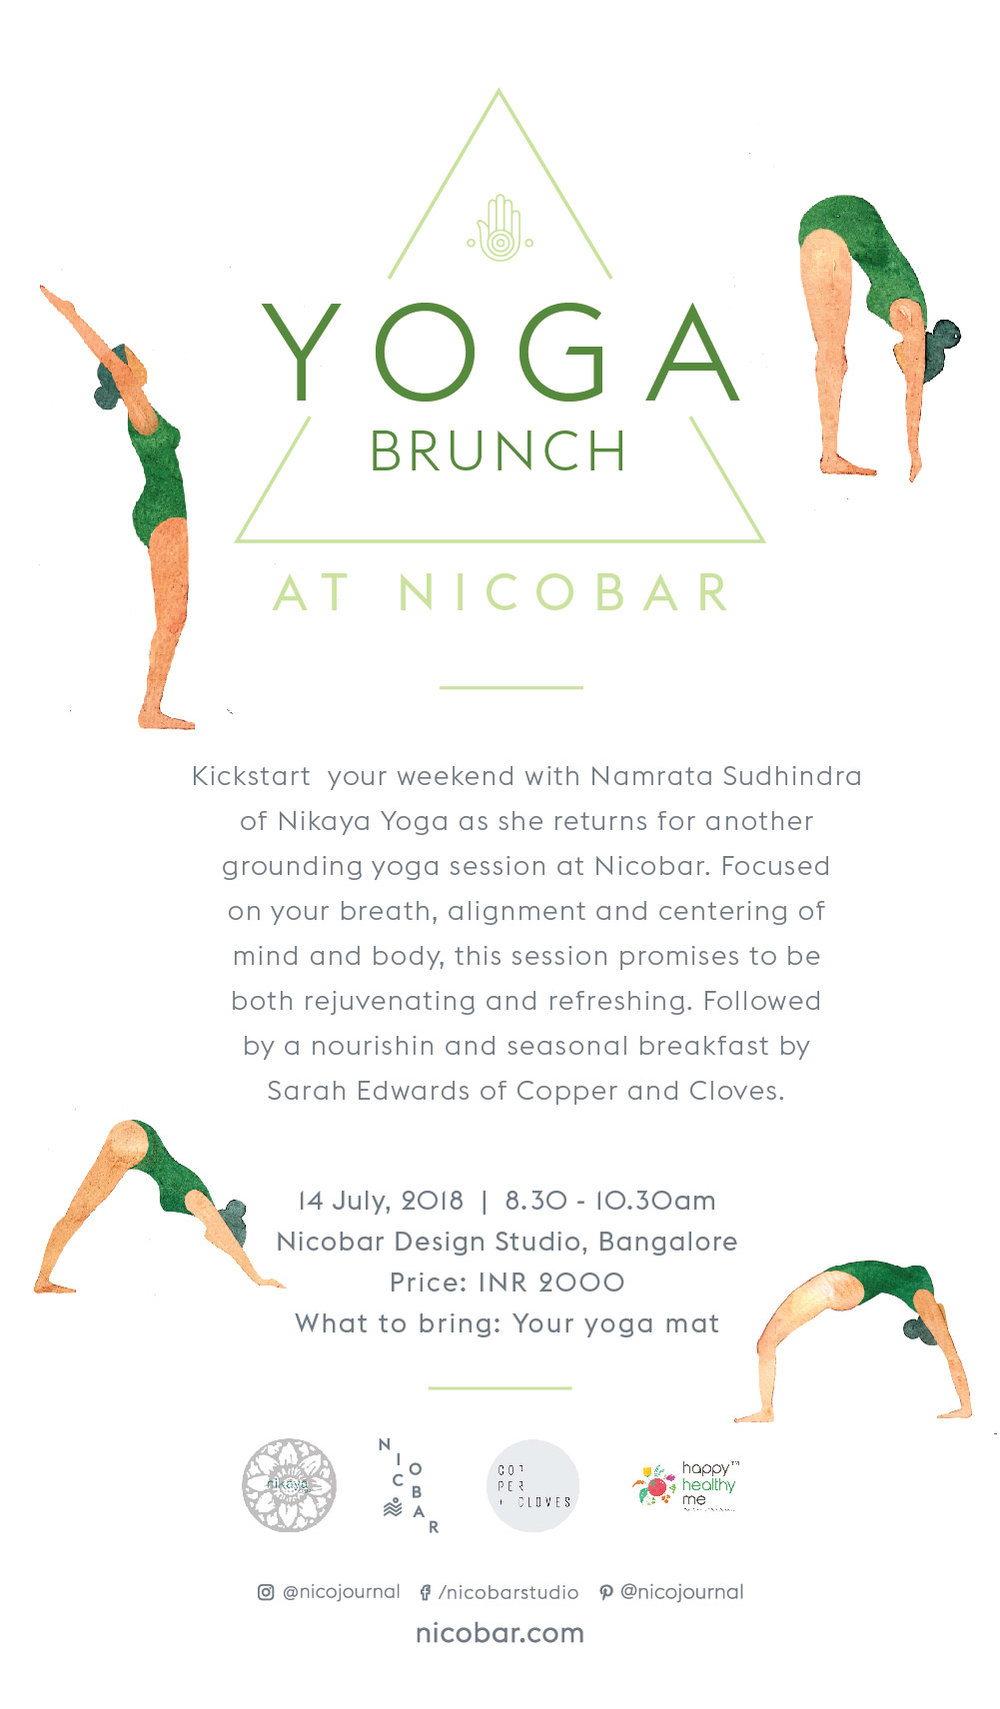 WhatsApp_Yoga_brunch_Bangalore_14_July18.jpg